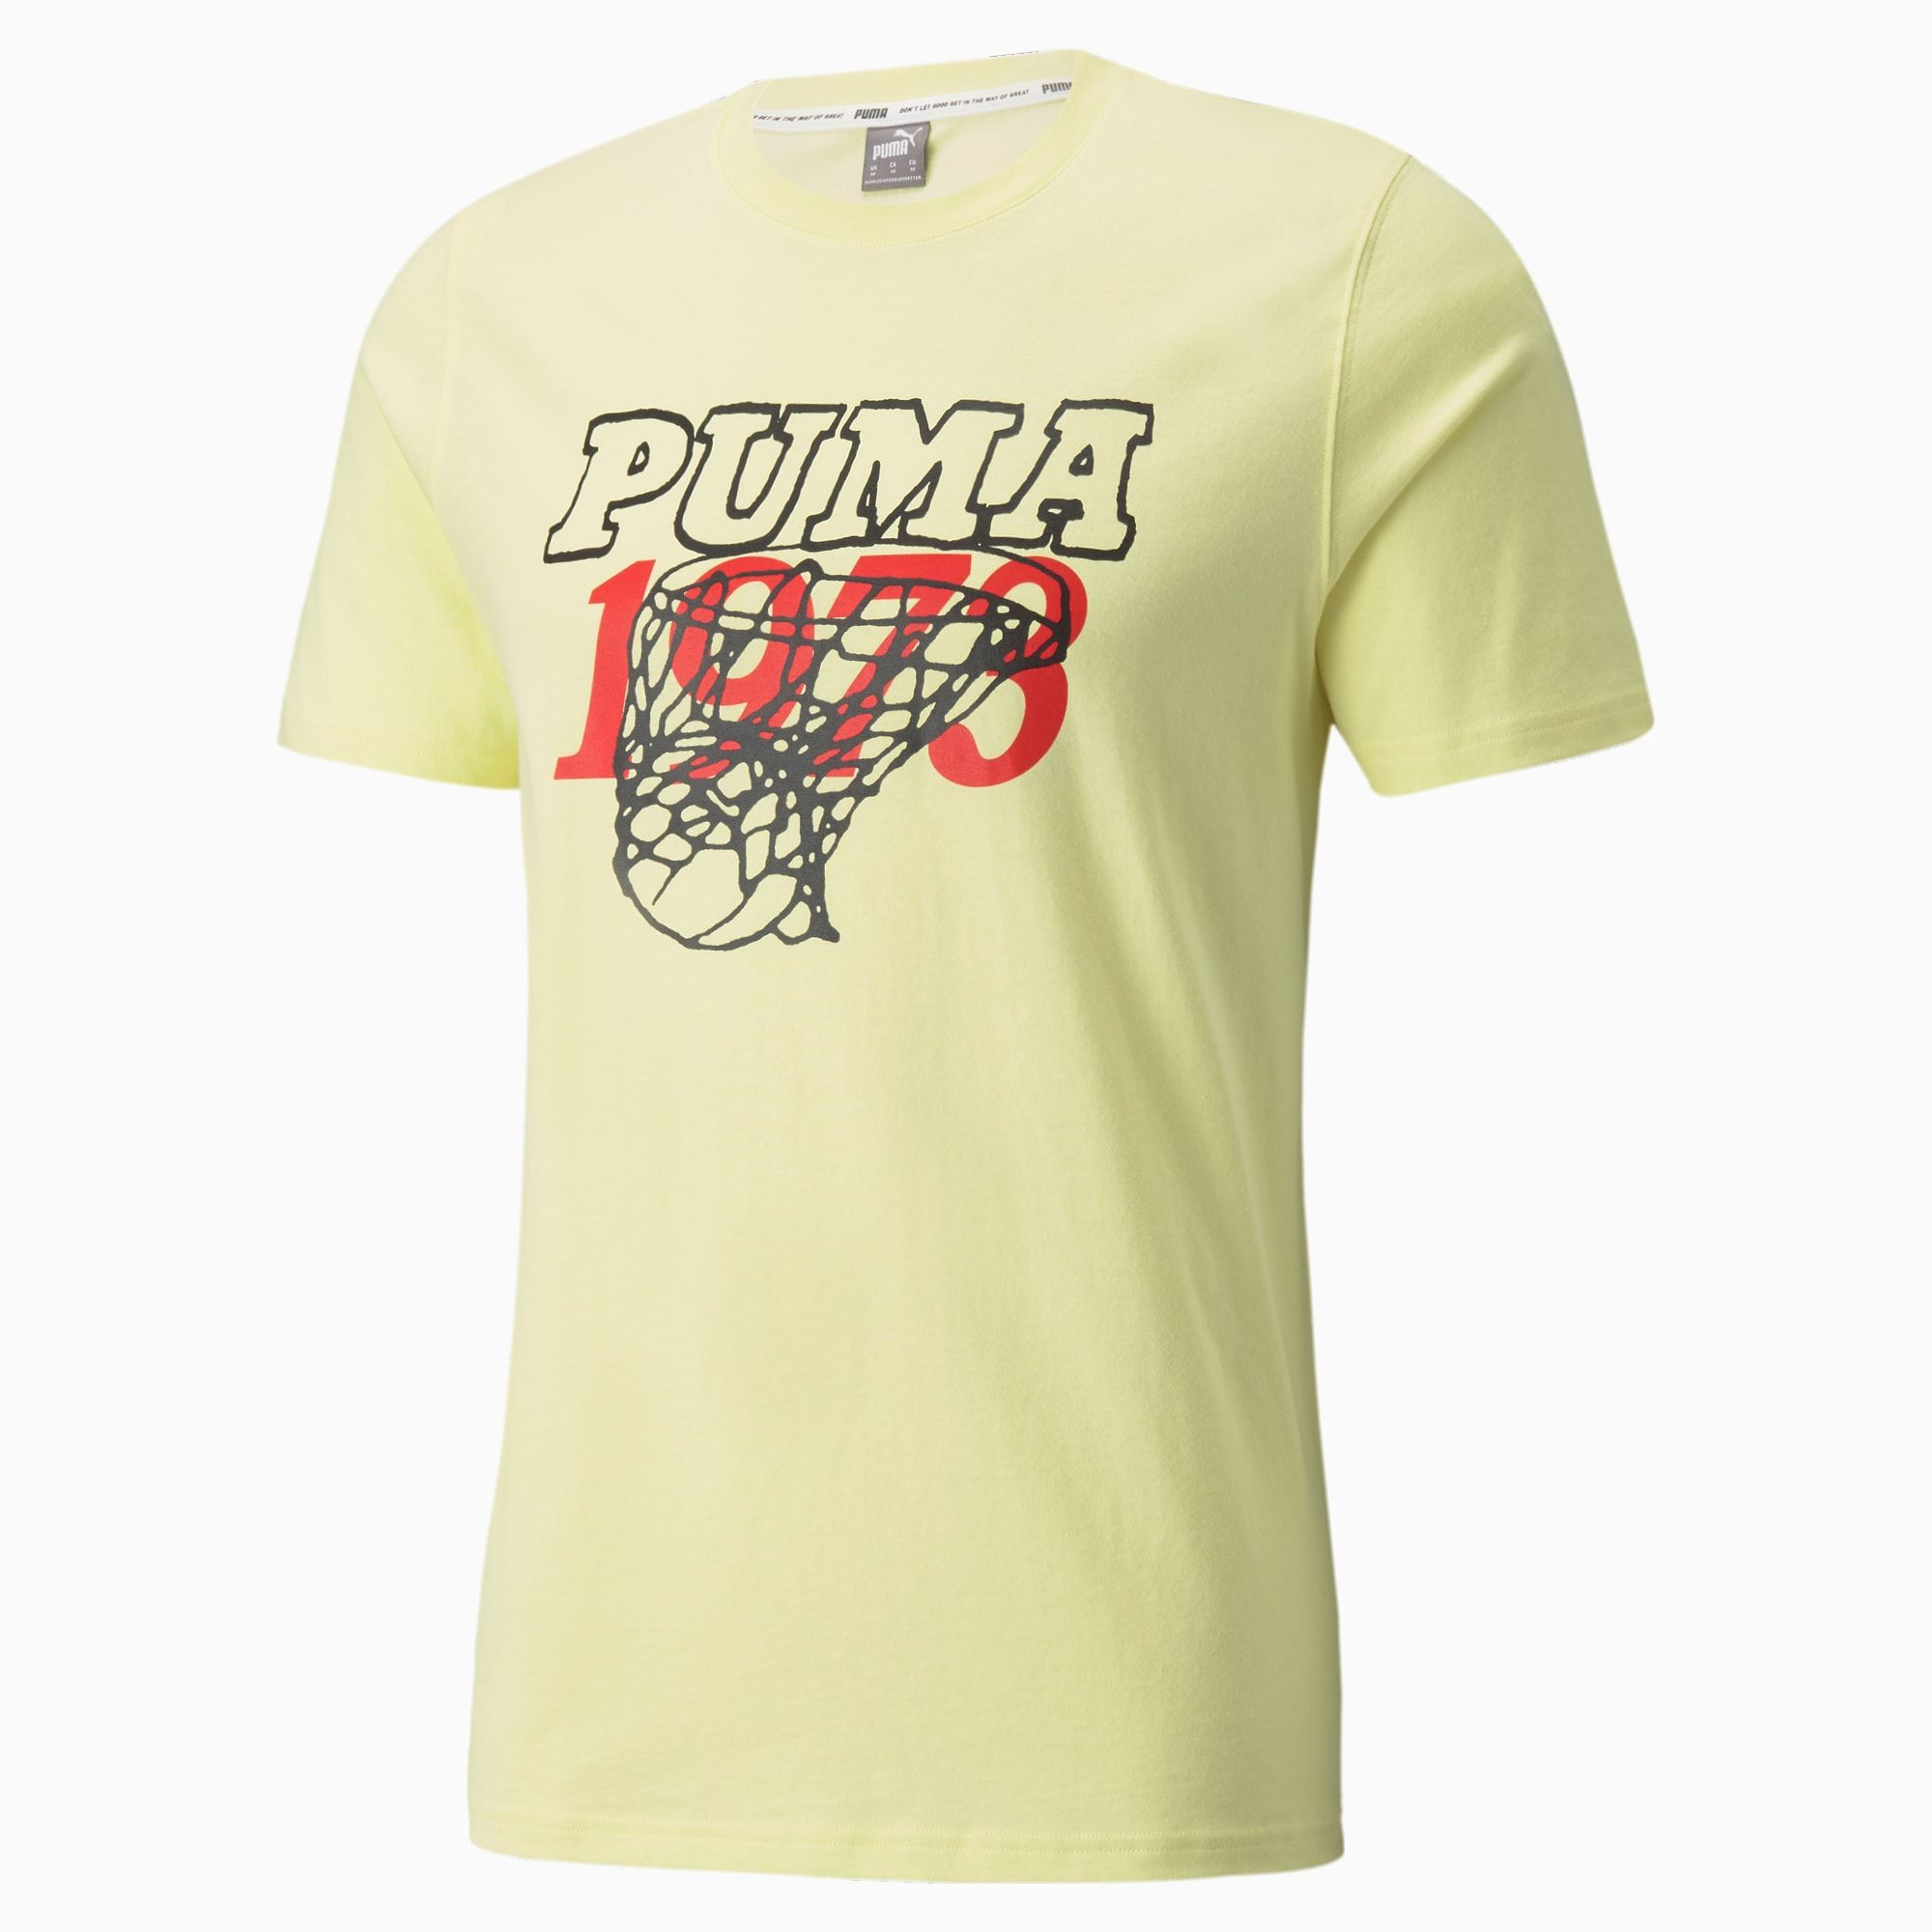 Give your outfit a style boost with the Scouted Tee. This must-have addition to your wardrobe merges a classic cut with stand-out design details for a winning combo you're sure to love. The bold graphics channel retro vibes and big-cat inspiration, creating a fearless, head-turning look.. Visit our page to learn more about our yellow pear PUMA Scouted Short Sleeve Men's Basketball T-Shirt, Yellow Pear, size Medium, Clothing.